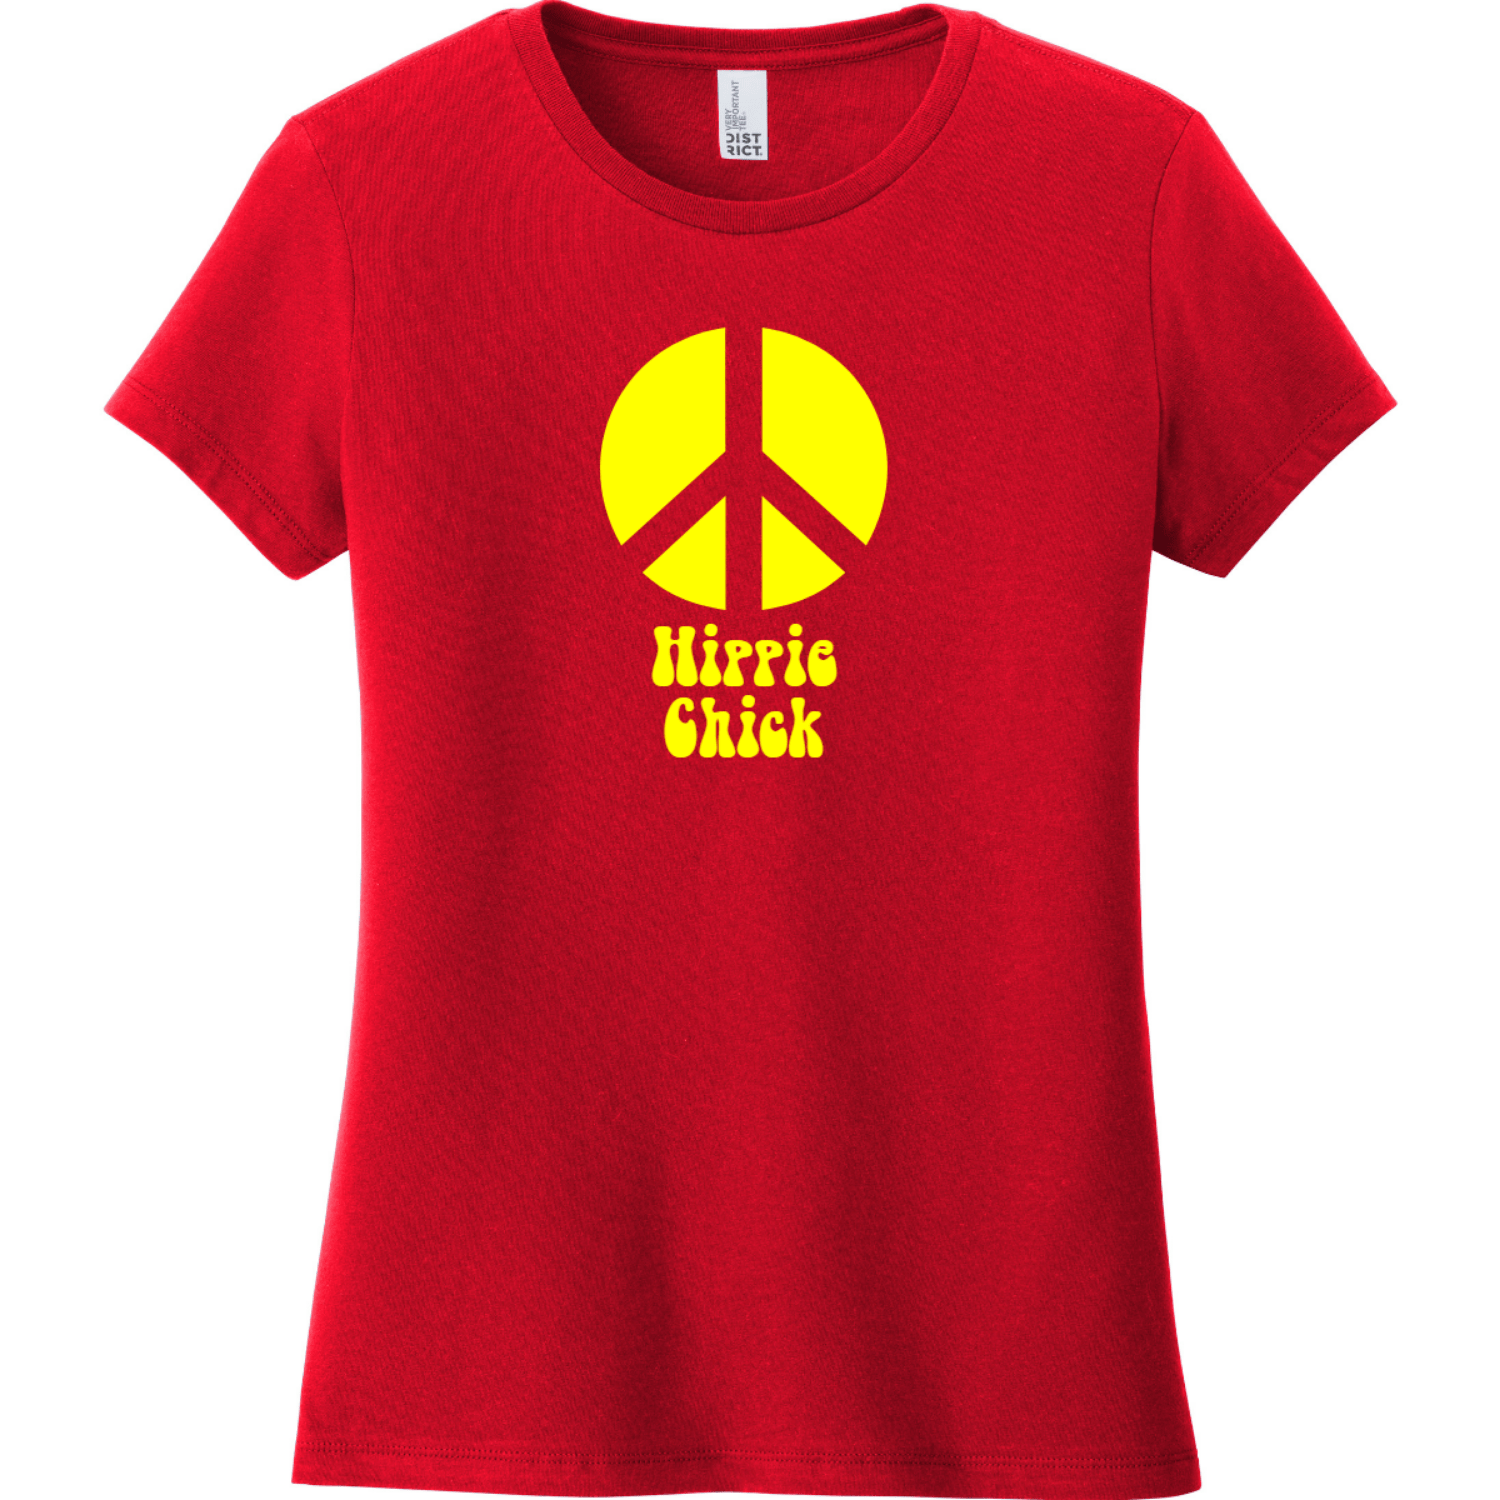 Hippie Chick Peace T-Shirt Classic Red District Women's Very Important Tee DT6002